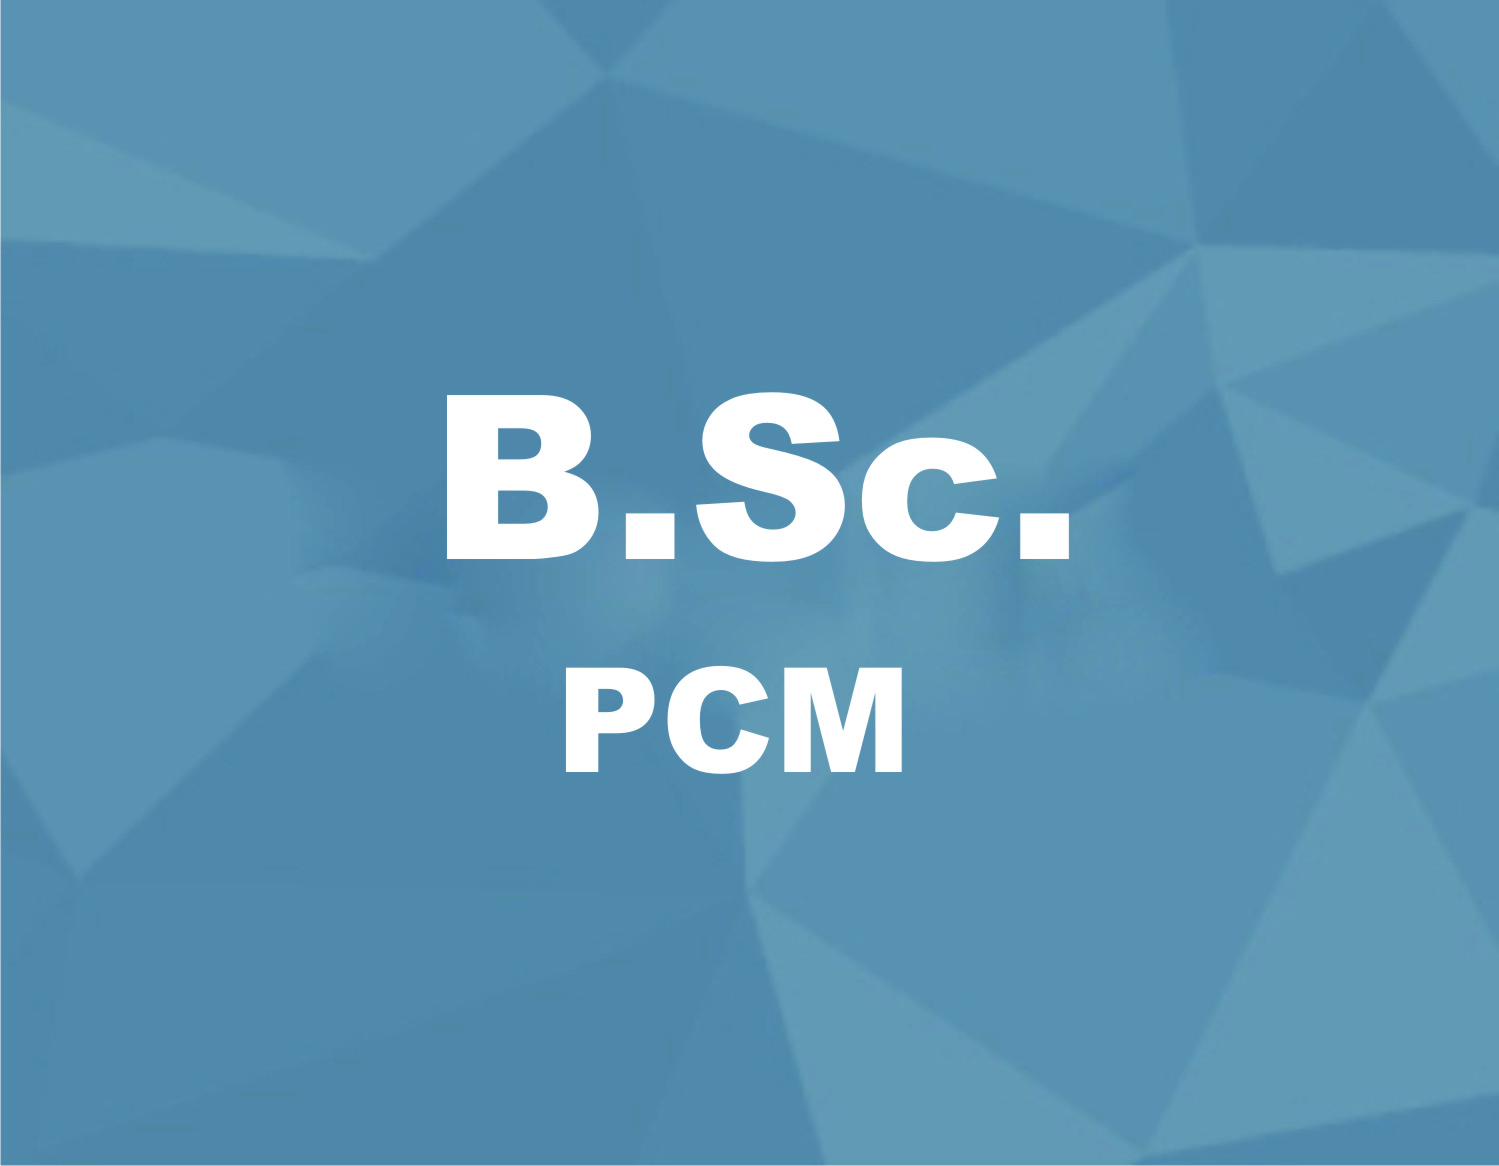 Bachelor of Science in PCM